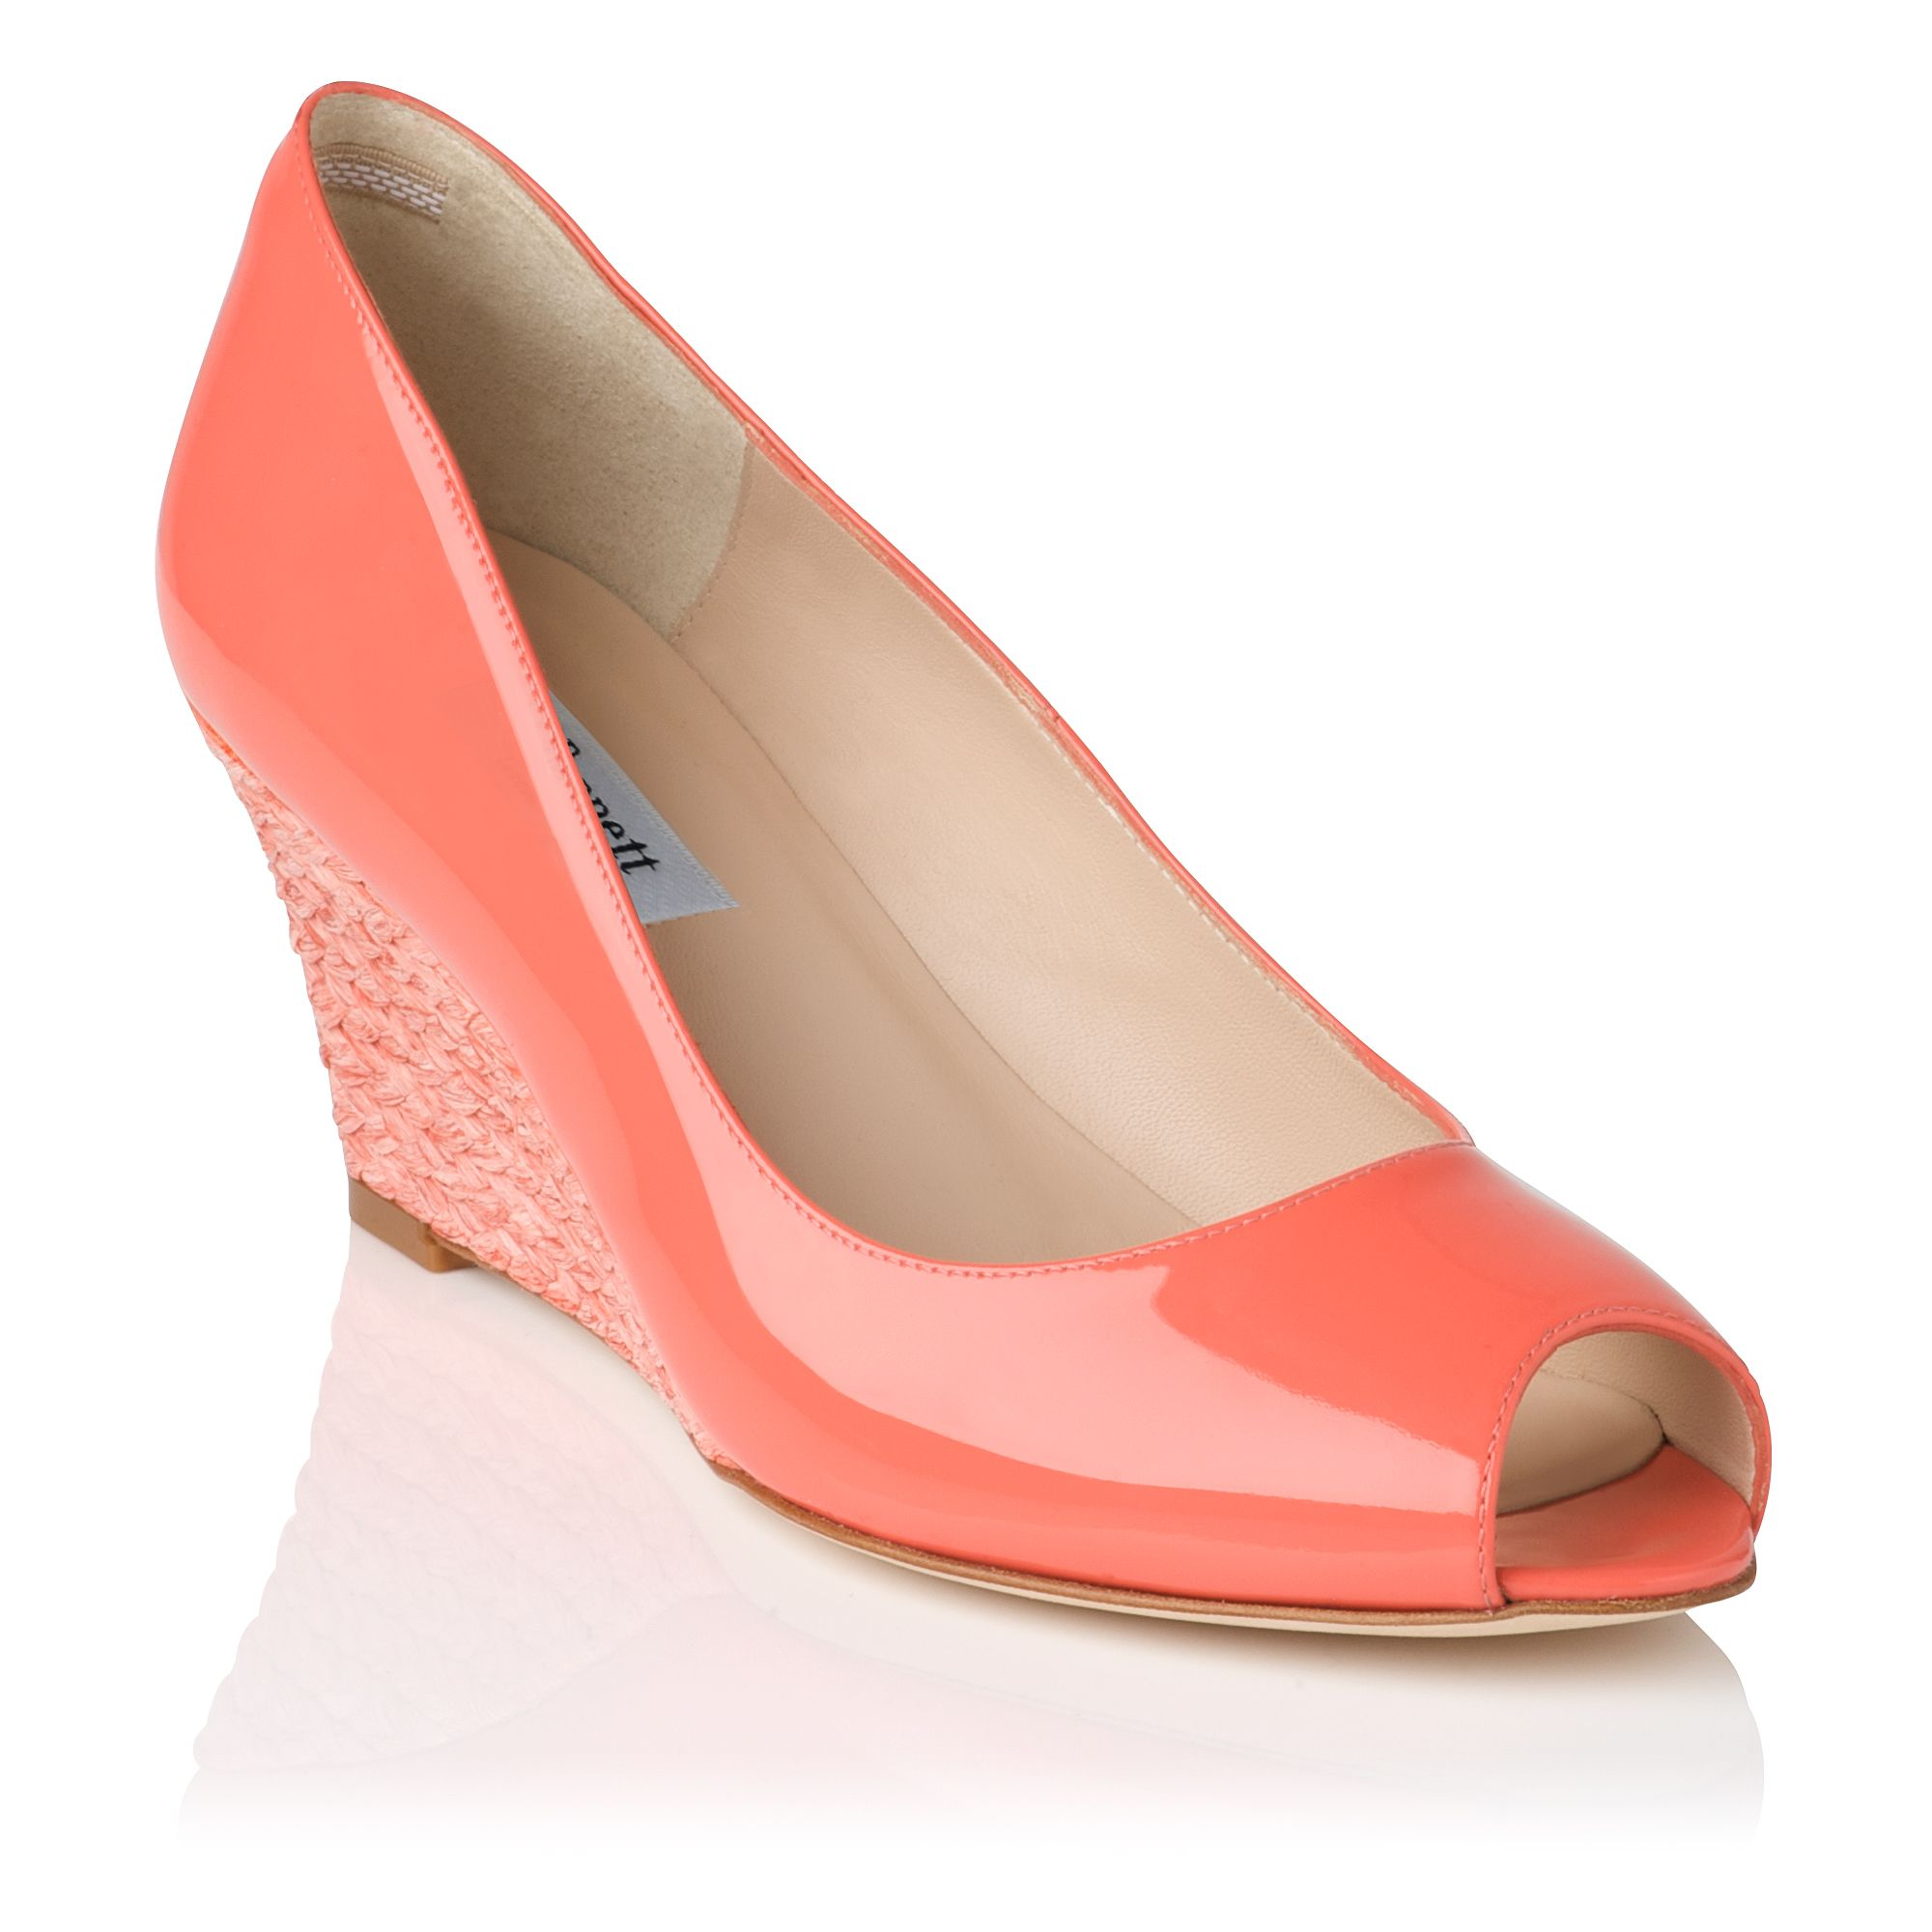 Free shipping BOTH ways on peep toe wedges, from our vast selection of styles. Fast delivery, and 24/7/ real-person service with a smile. Click or call